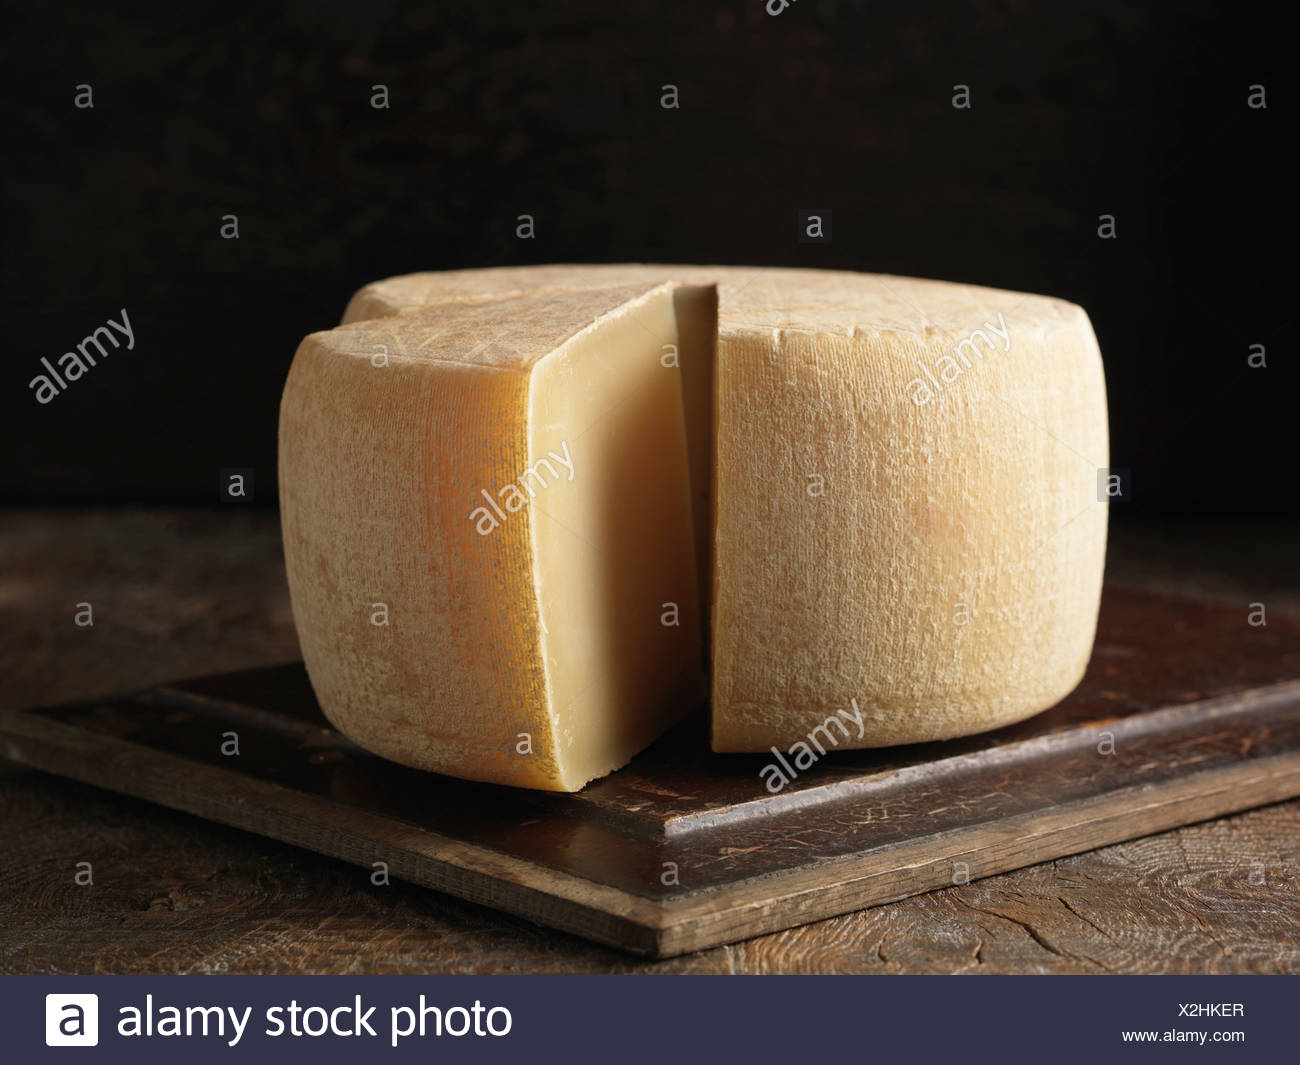 Still life with whole ossau-iraty cheese - Stock Image